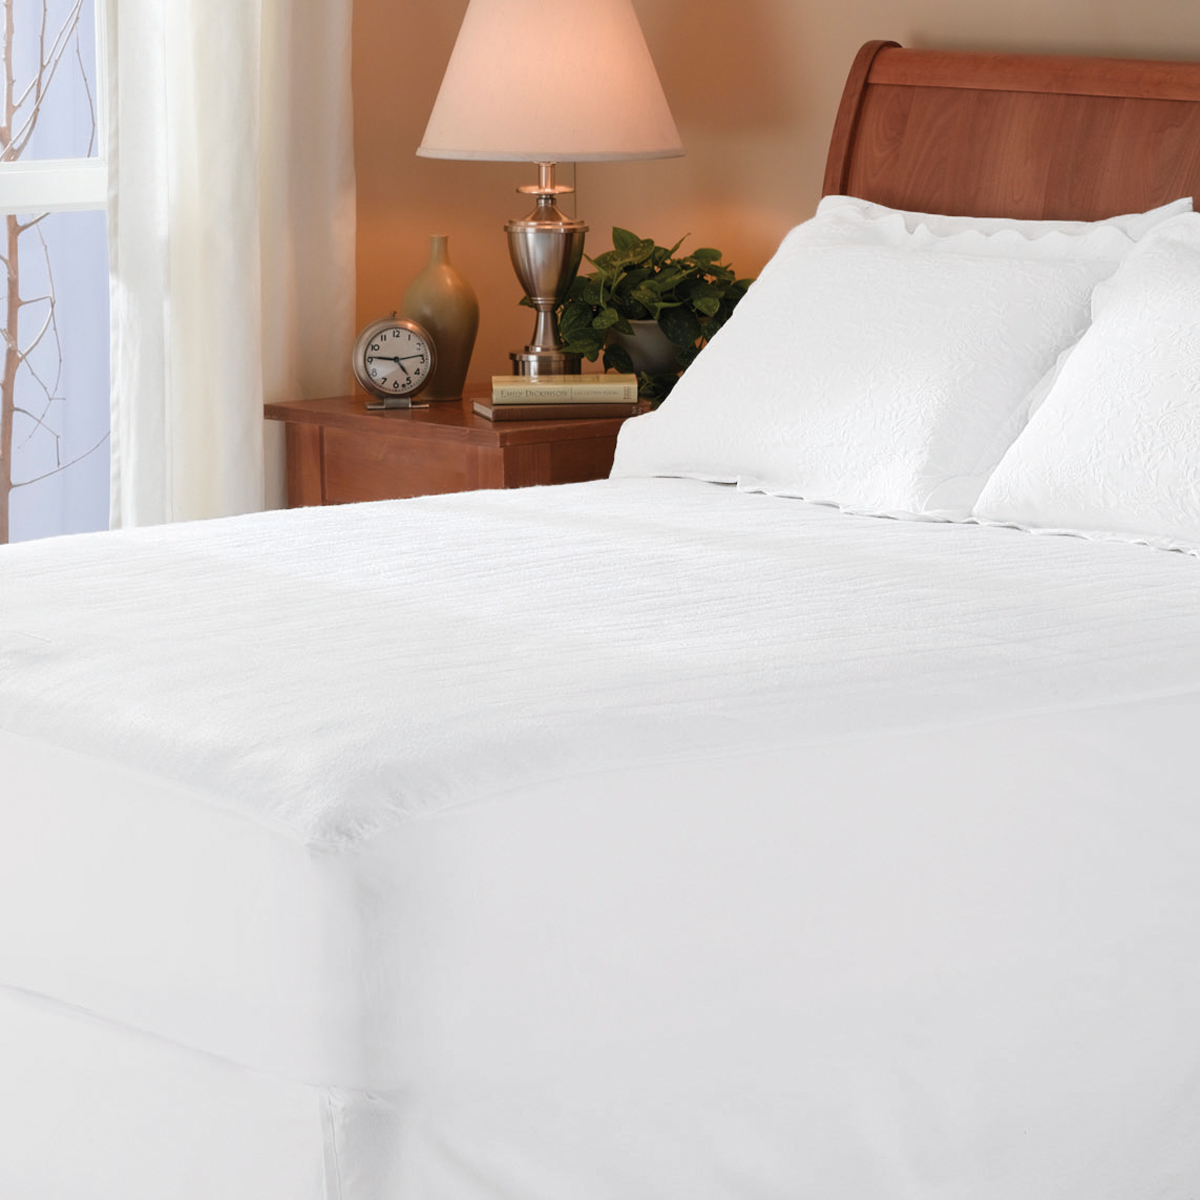 Sunbeam Heated Mattress Pad Canada Wiring Diagram Also Circuit For Electric Blanket Quilted With 10 Heat Settings Full